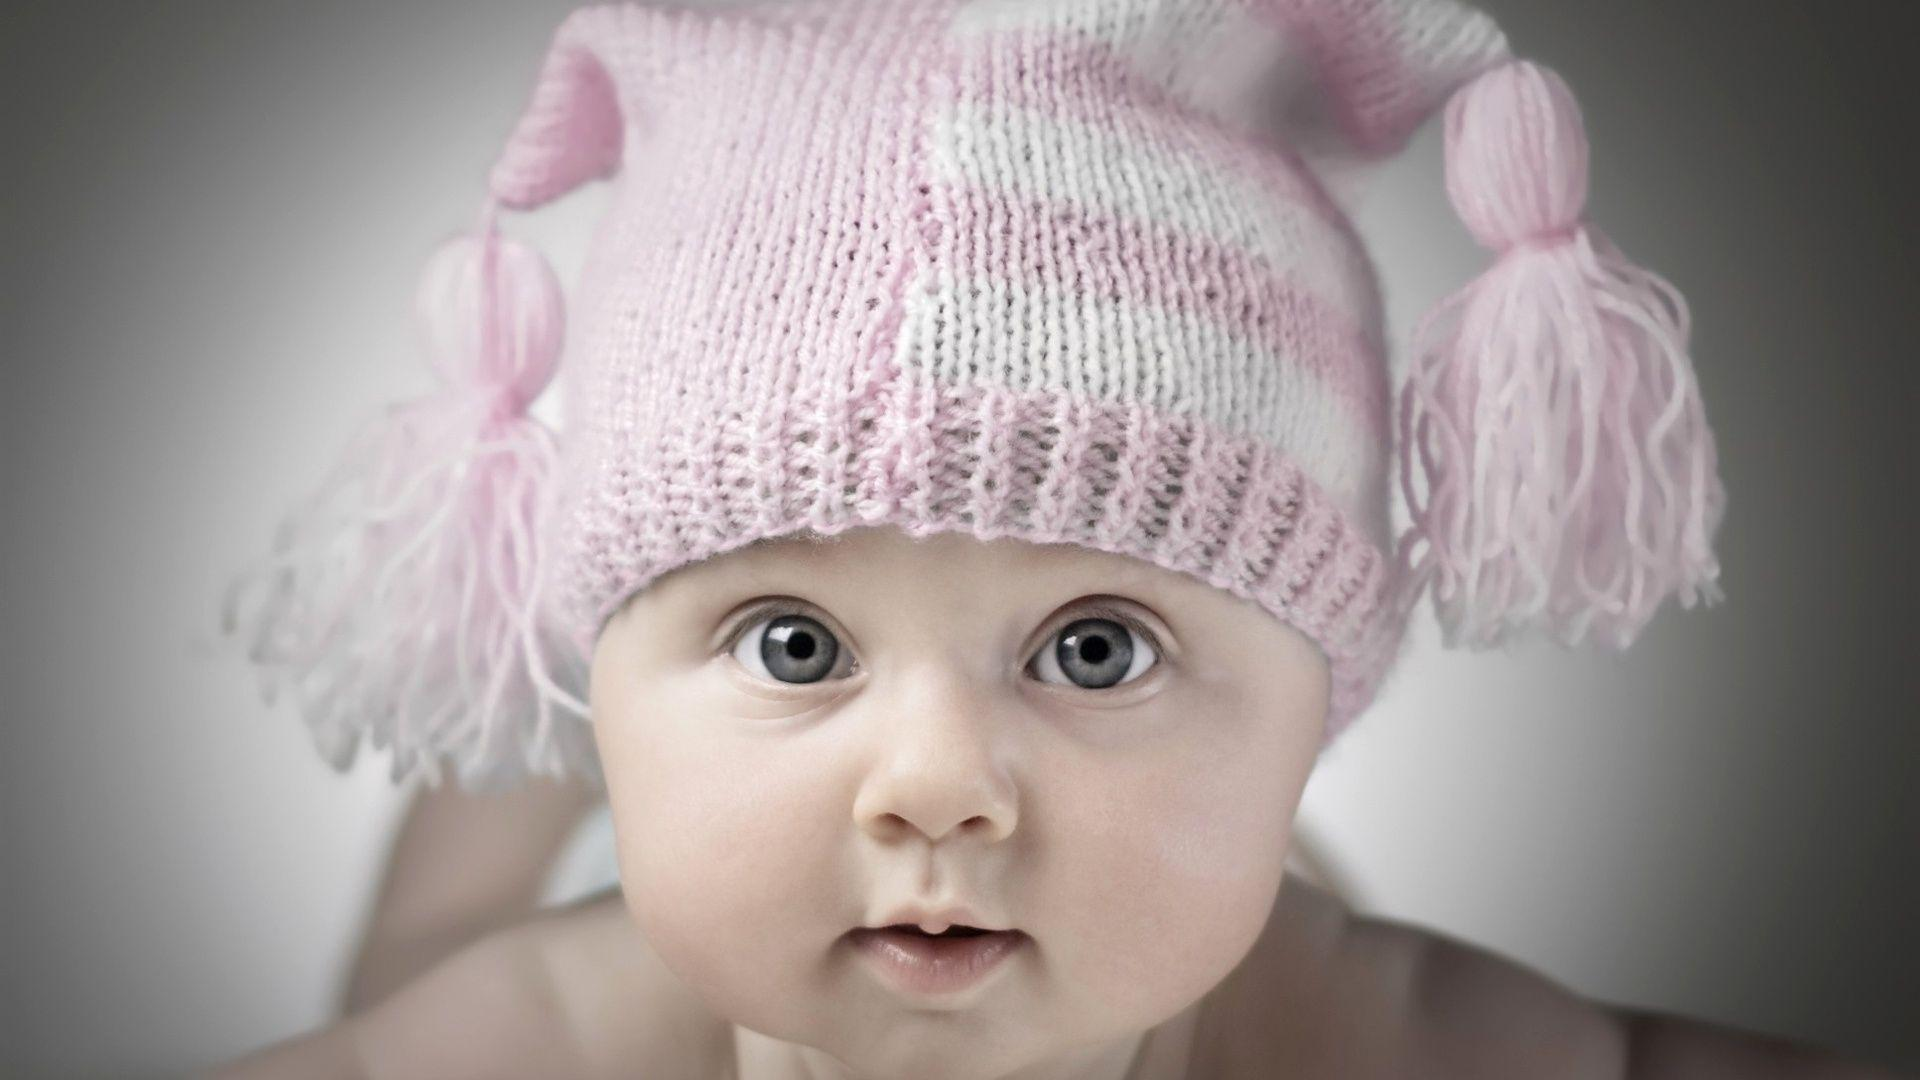 baby hd wallpapers for mobile